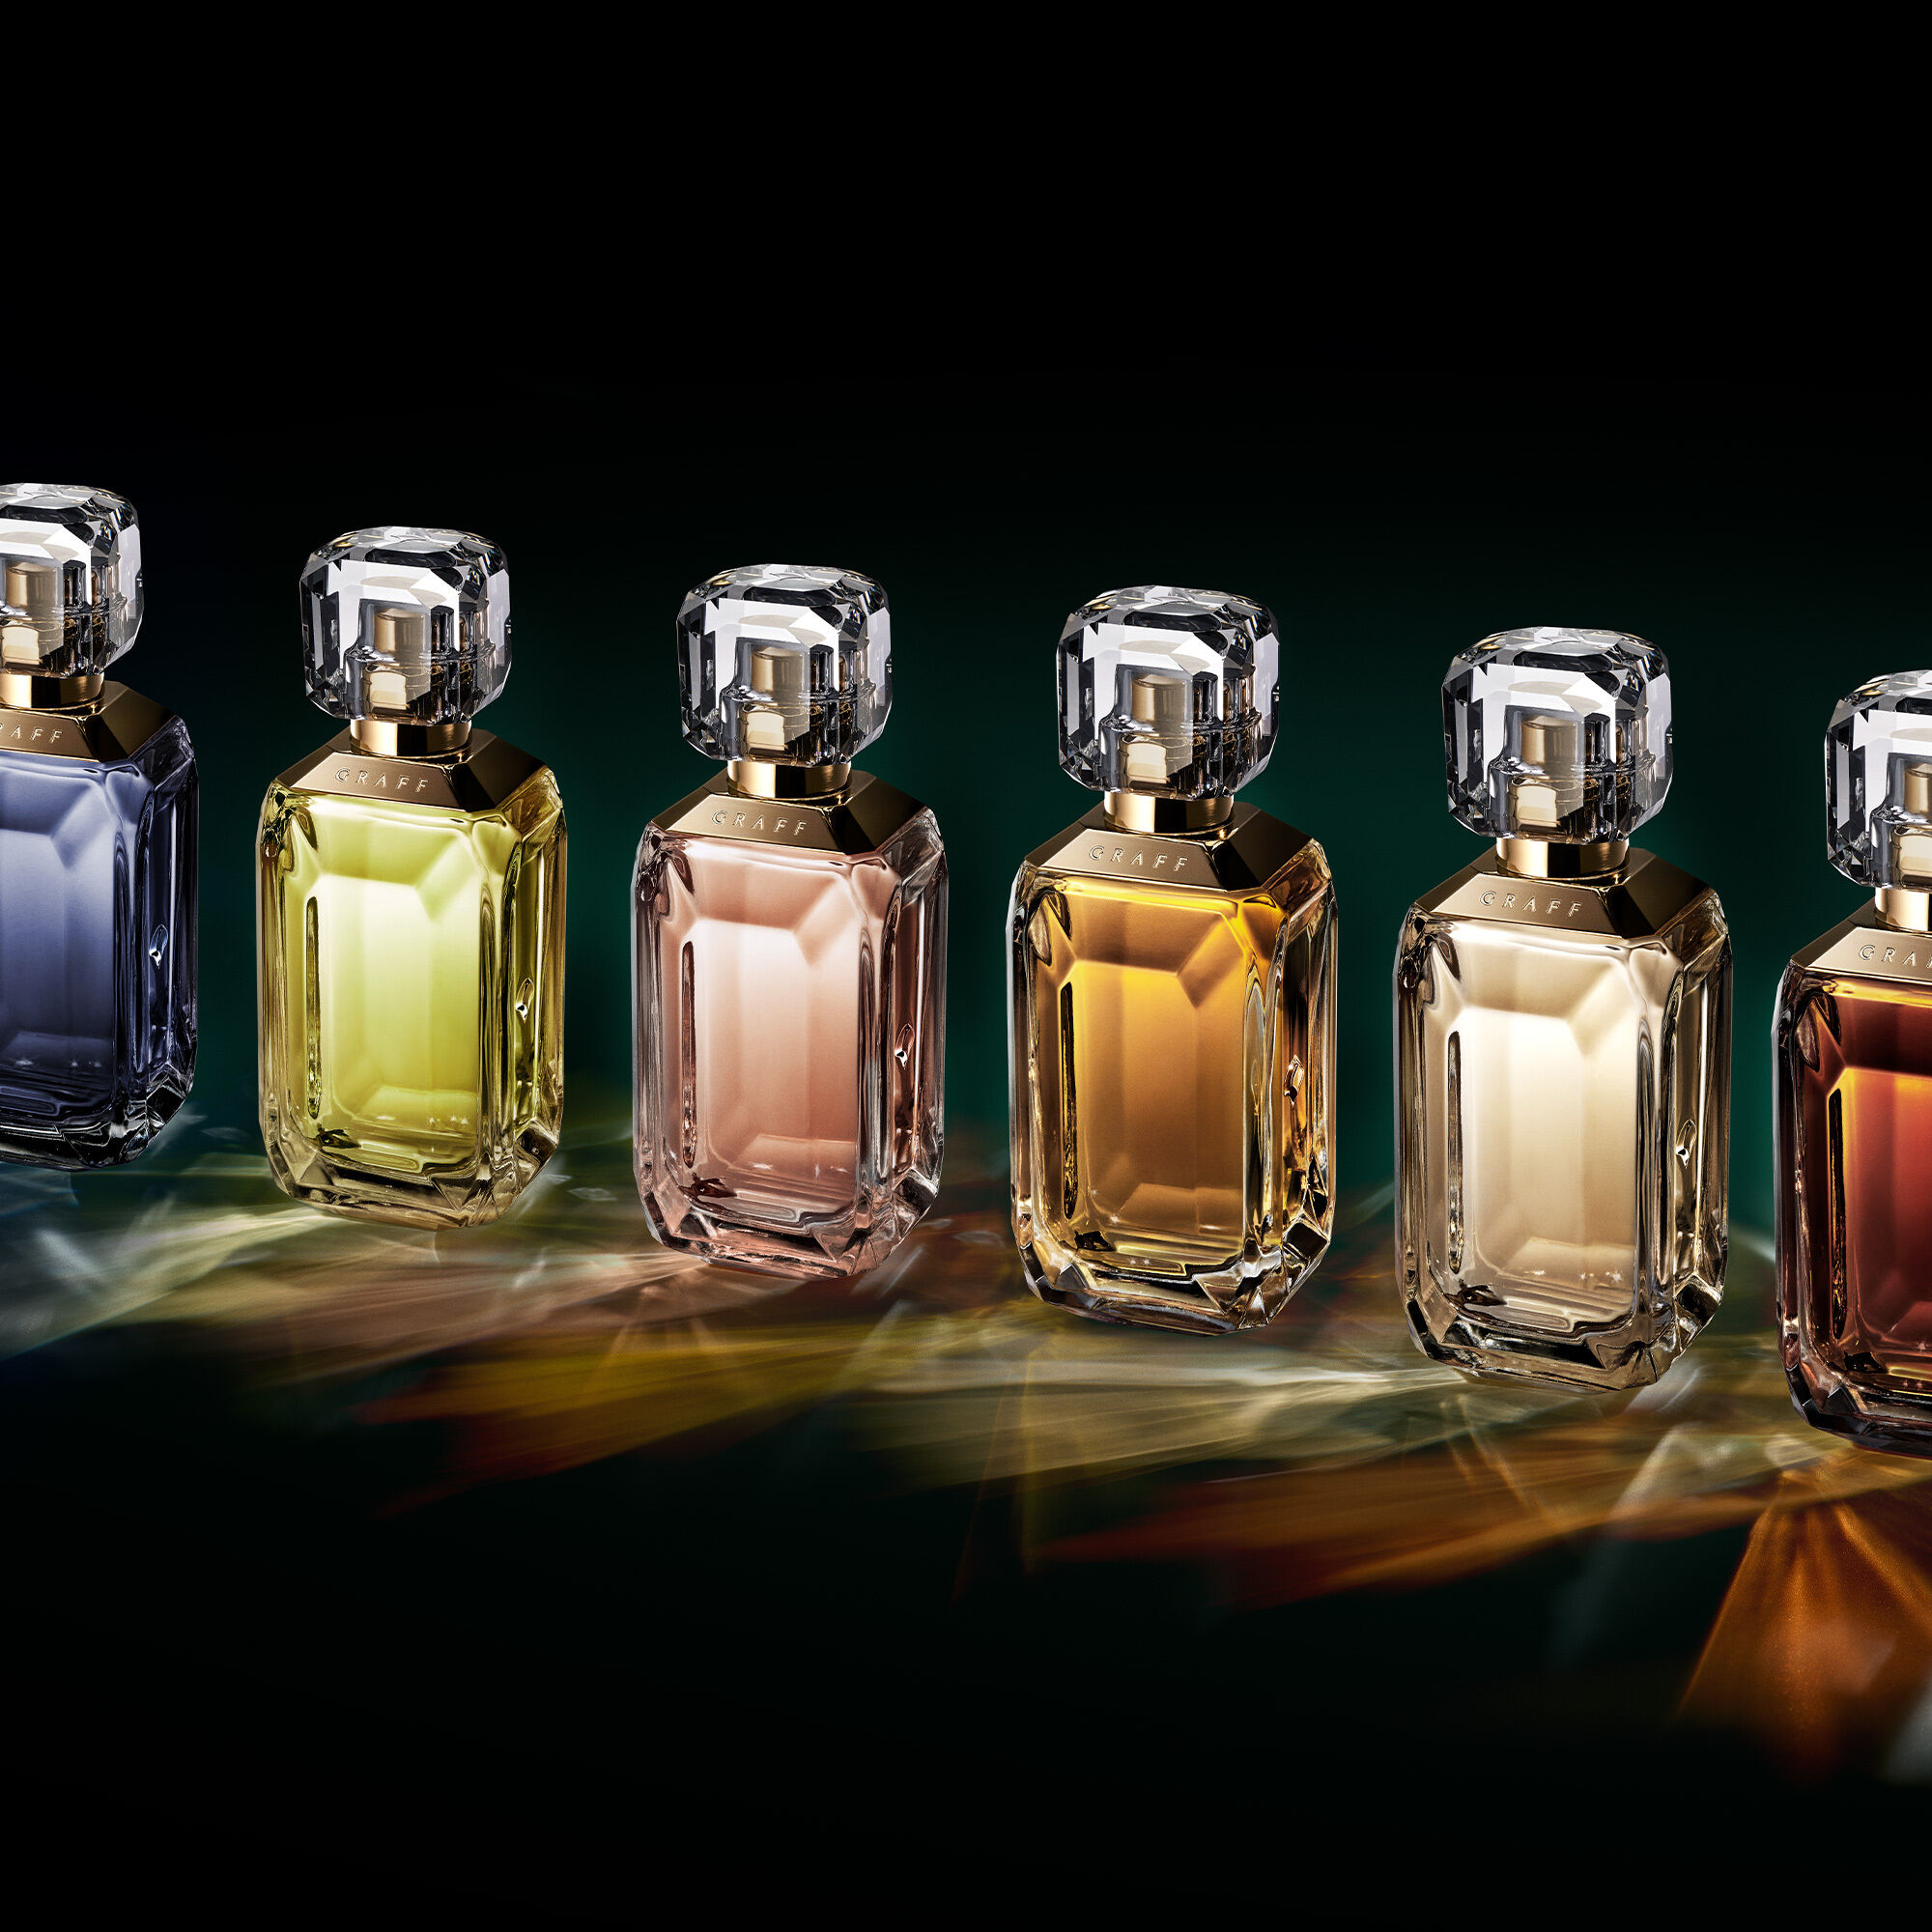 Six bottles of the Graff Lesedi La Rona Fragrance